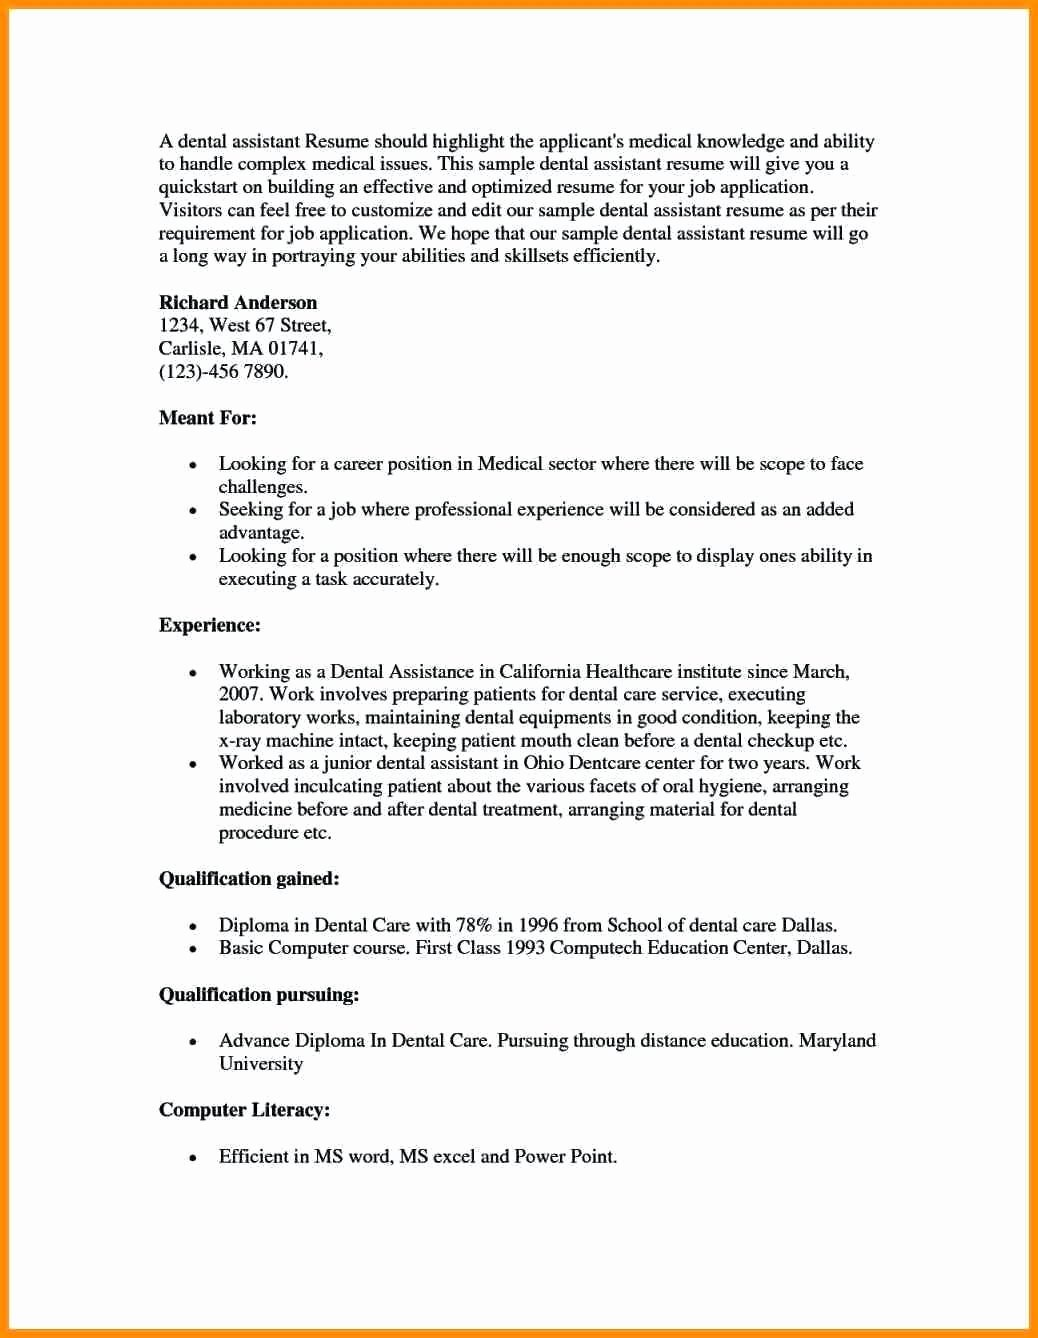 Statement Of Qualifications Template Free Luxury 10 Statement Of Qualifications Template